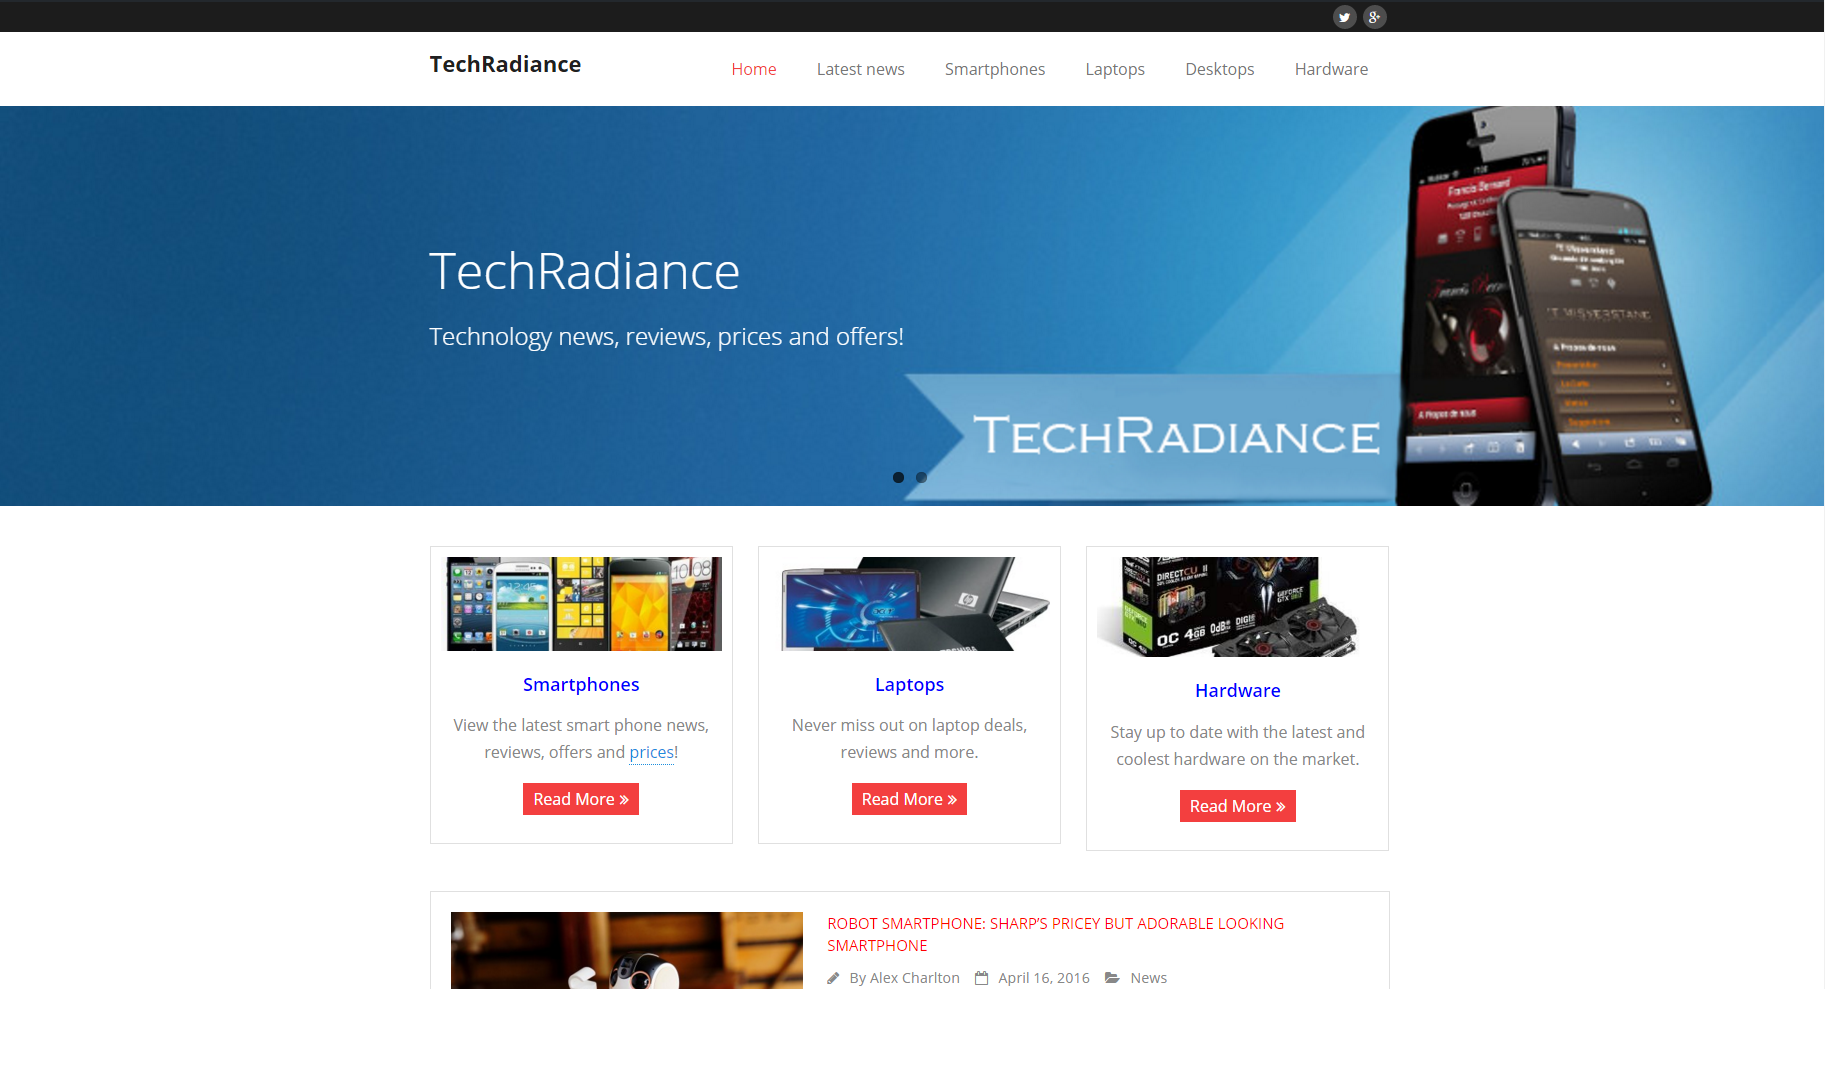 TechRadiance_homepage.png